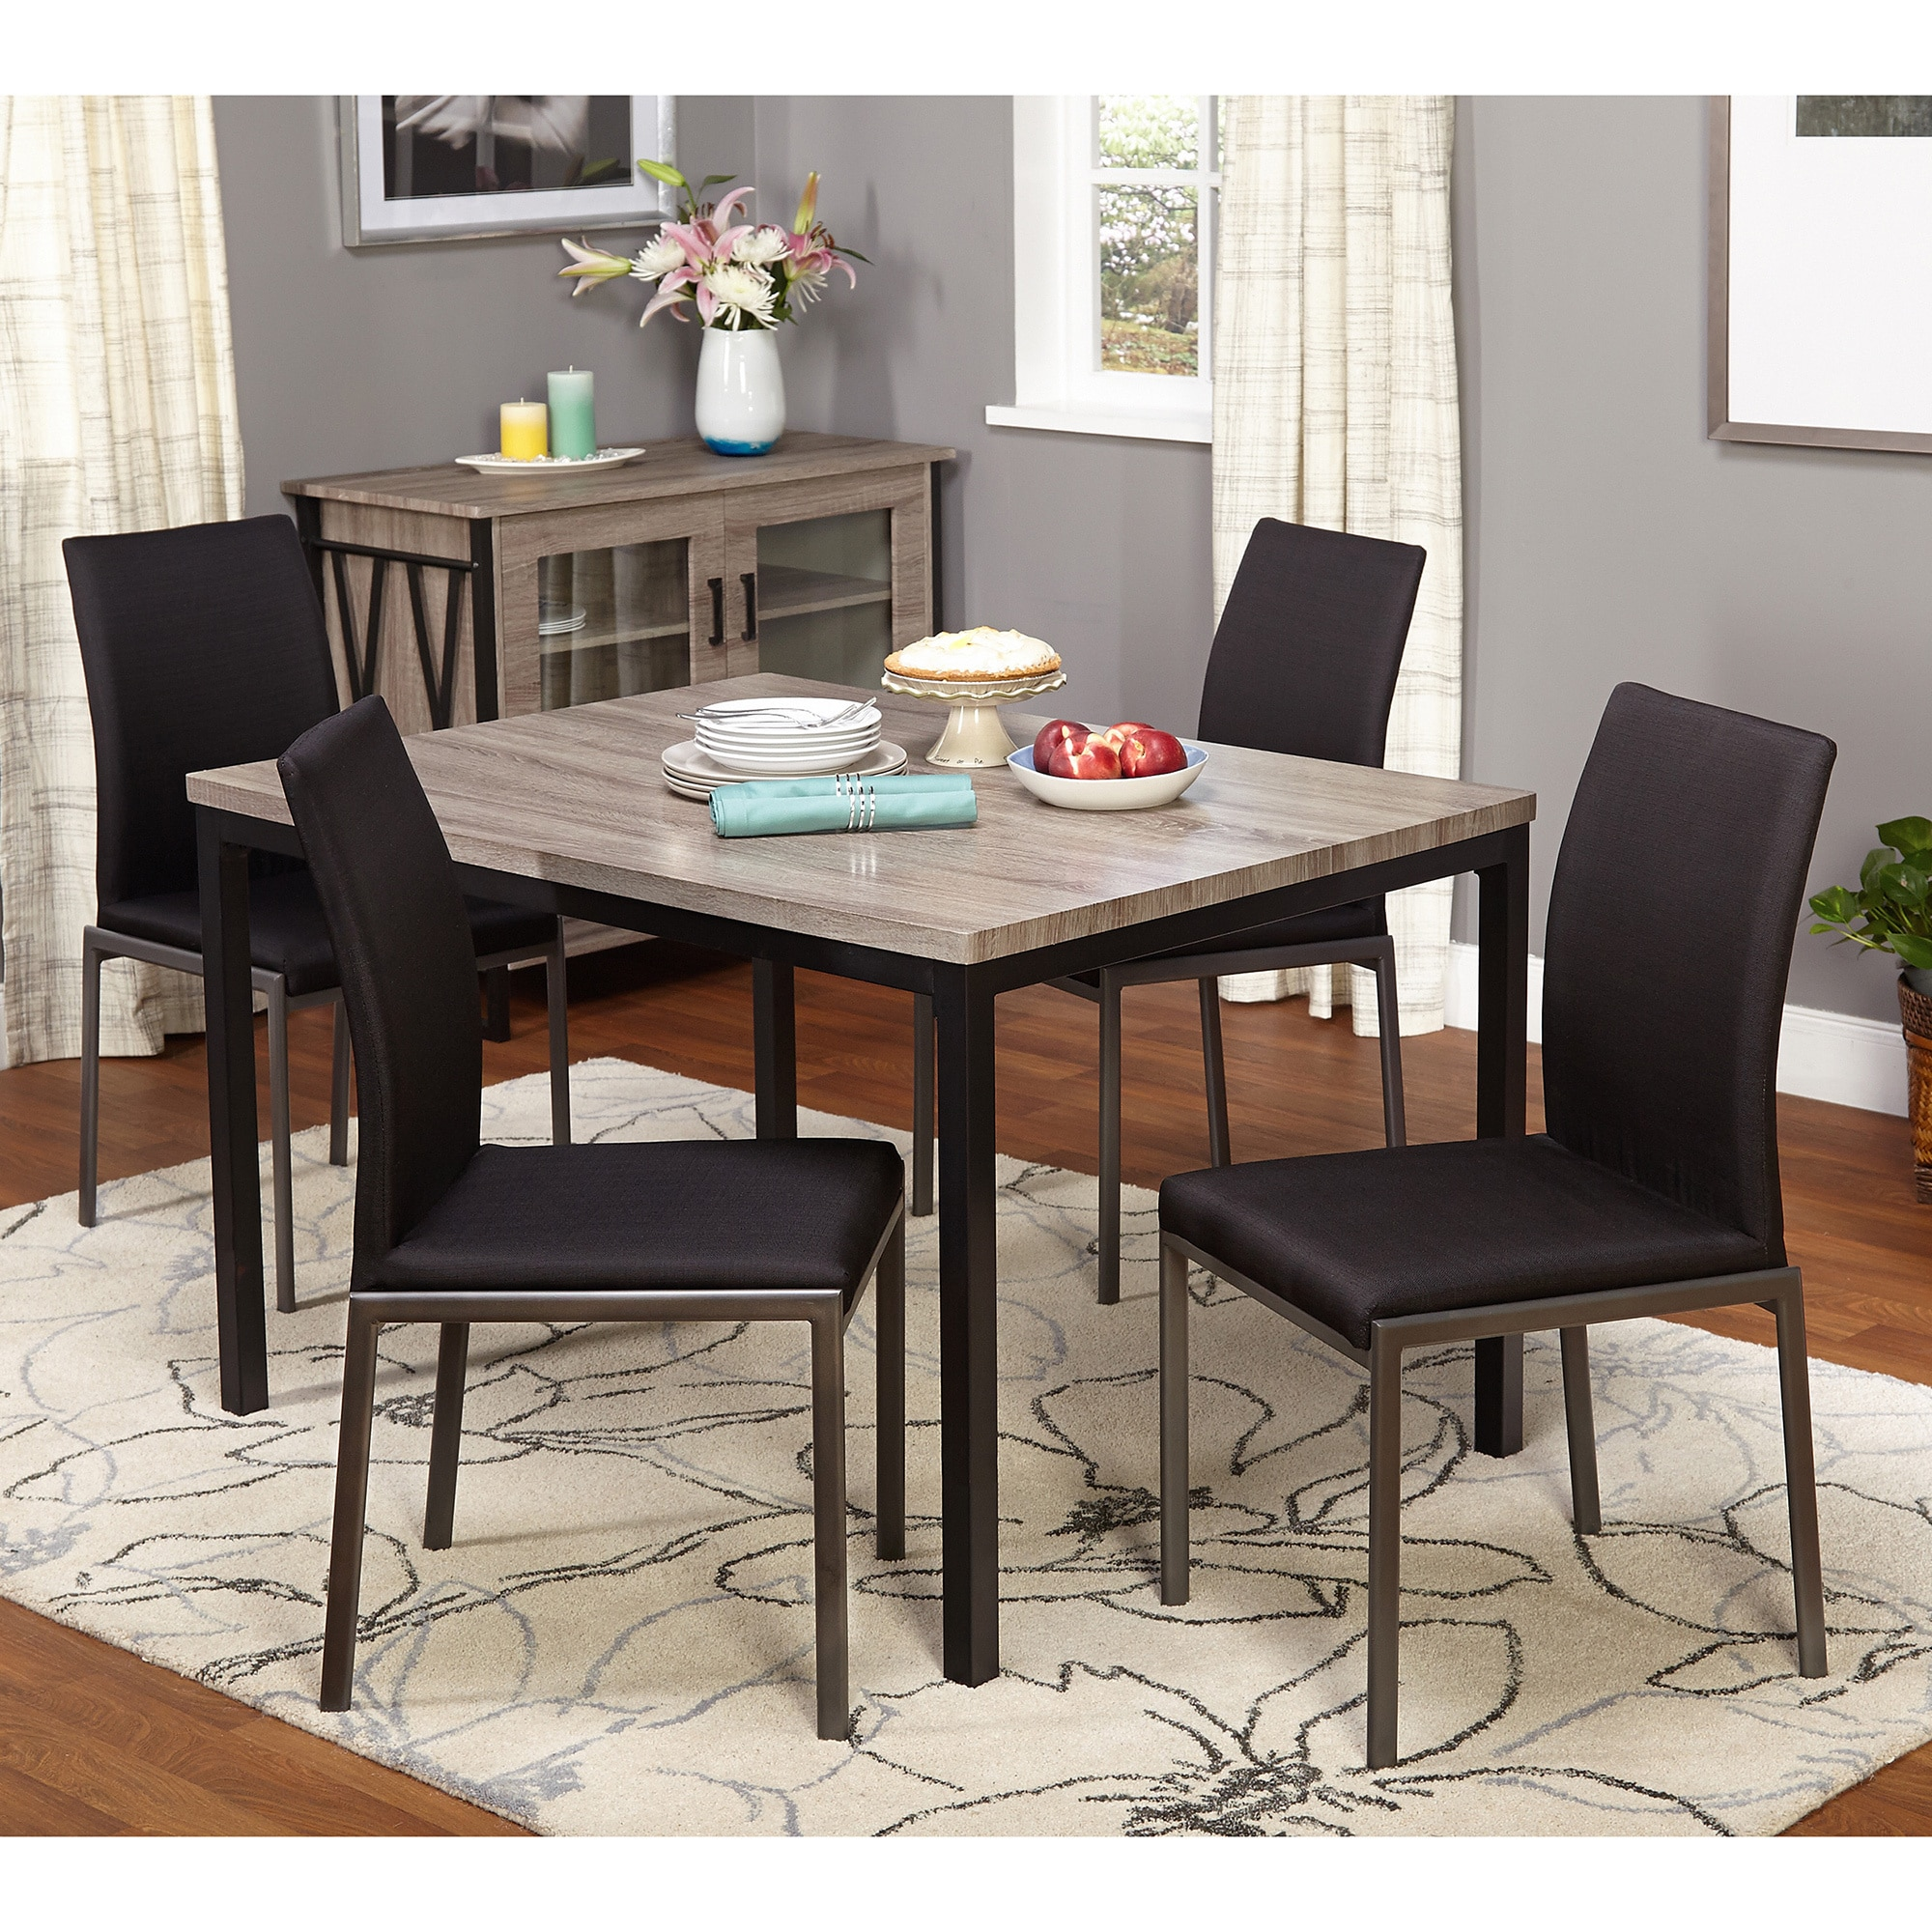 Lovely Simple Living Harrison 5 Piece Dining Set